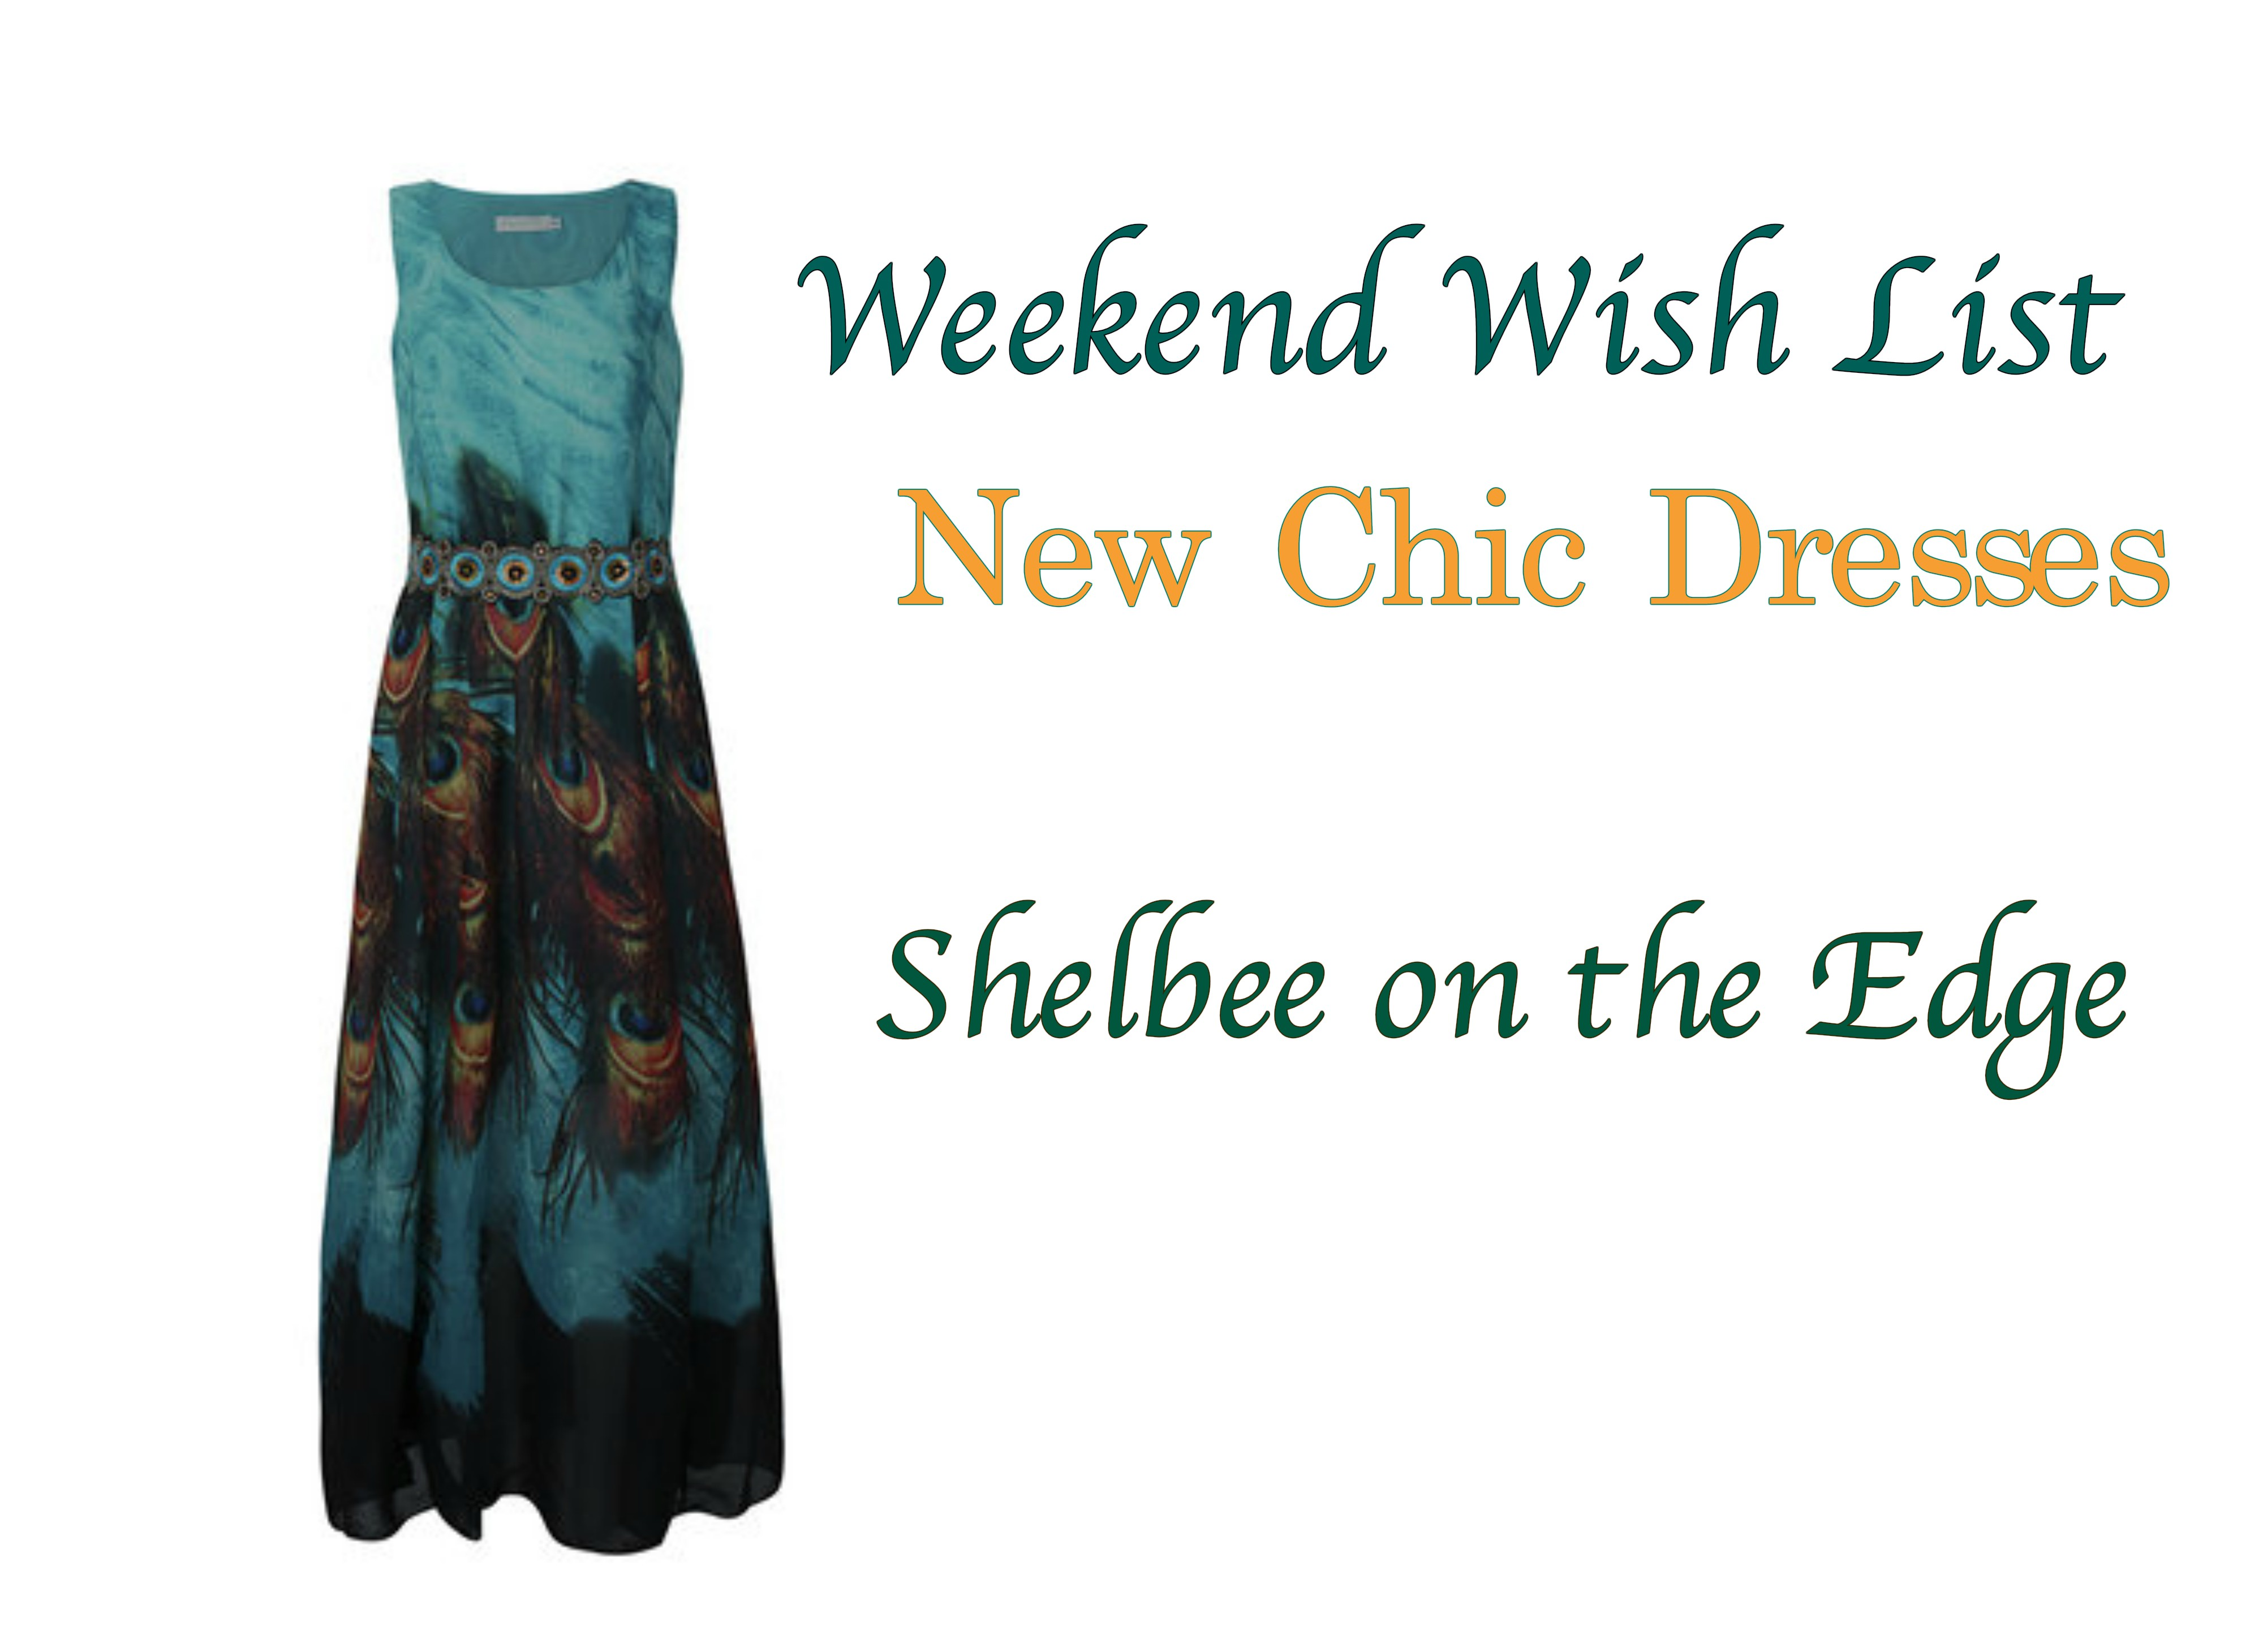 Weekend Wish List: Dresses from New Chic